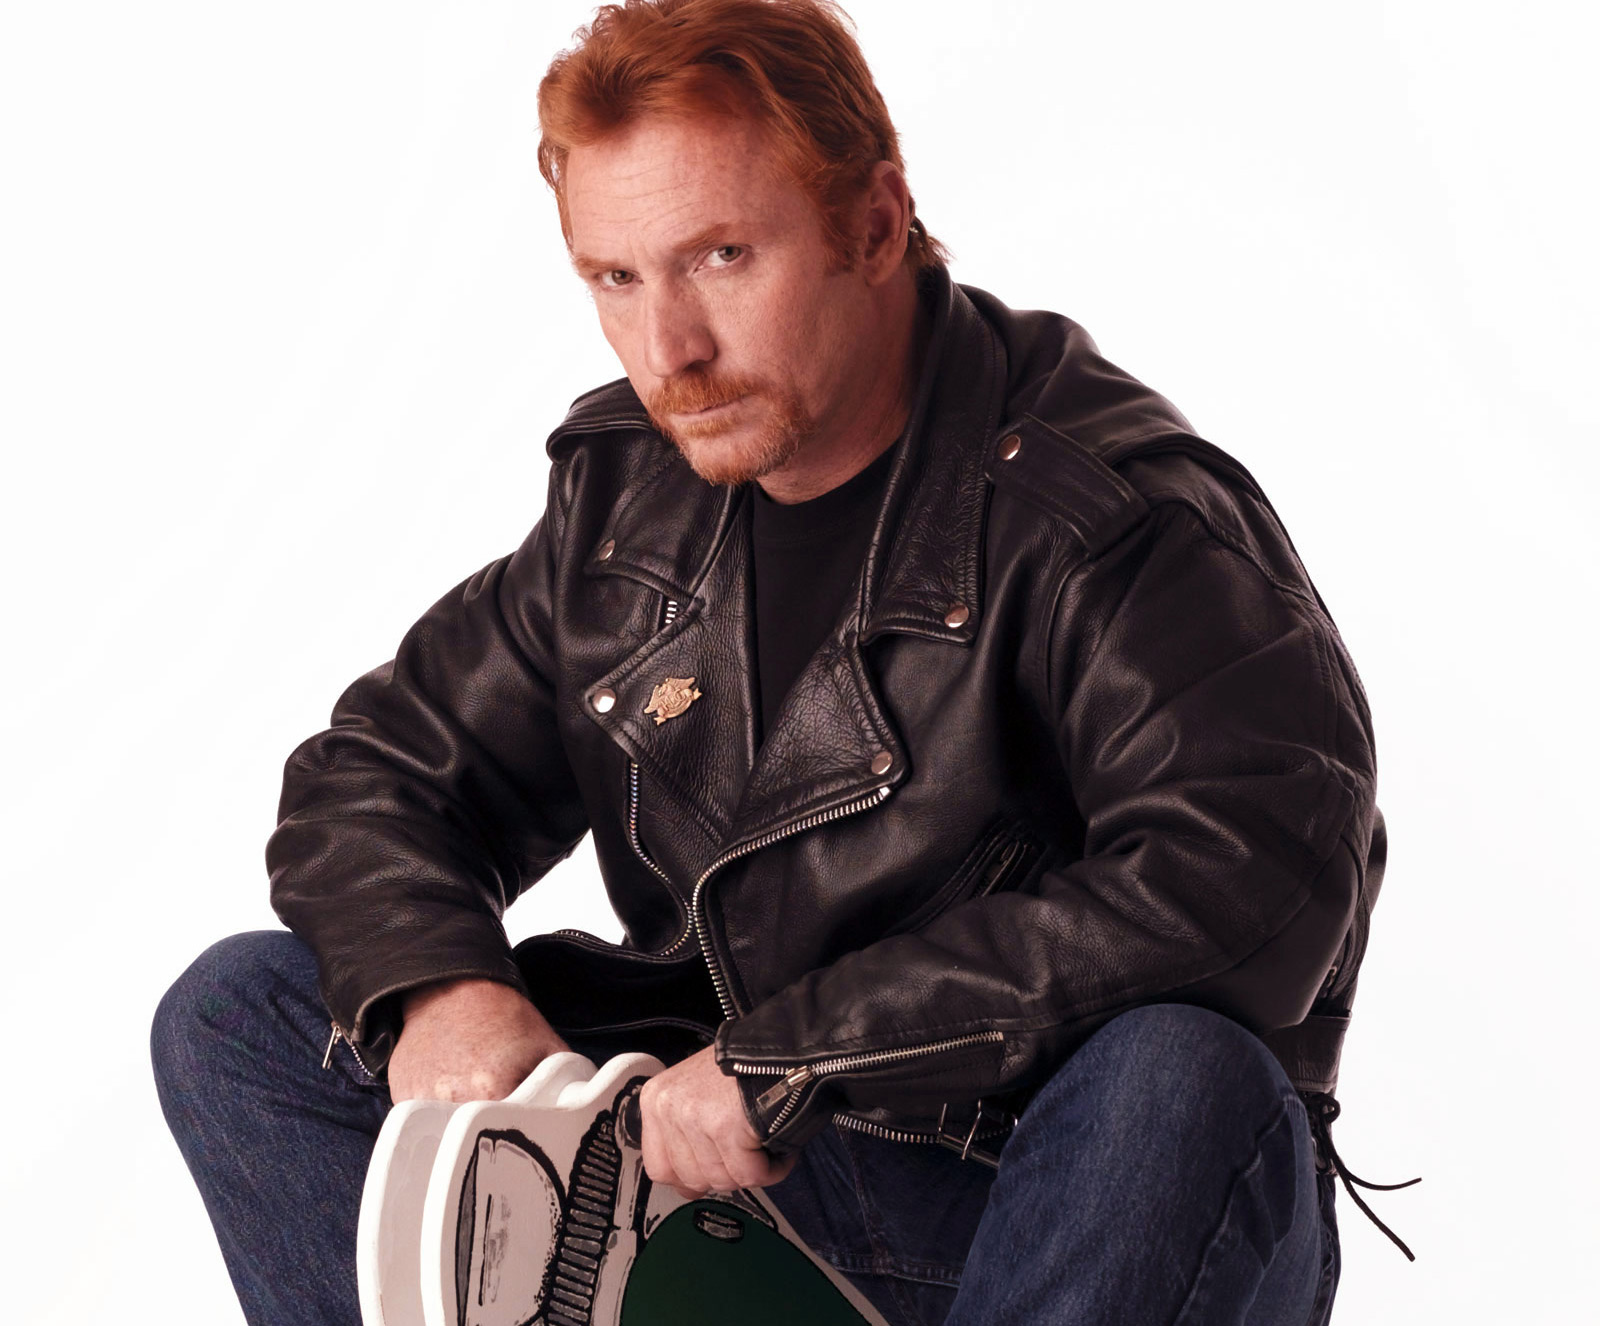 danny bonaduce steroidsdanny bonaduce johnny, danny bonaduce wife, danny bonaduce movies, danny bonaduce net worth, danny bonaduce 2015, danny bonaduce jonny fairplay, danny bonaduce radio show, danny bonaduce seattle, danny bonaduce kzok, danny bonaduce partridge family, danny bonaduce twitter, danny bonaduce daughter, danny bonaduce imdb, danny bonaduce boxing, danny bonaduce steroids, danny bonaduce wife photos, danny bonaduce and sarah seattle